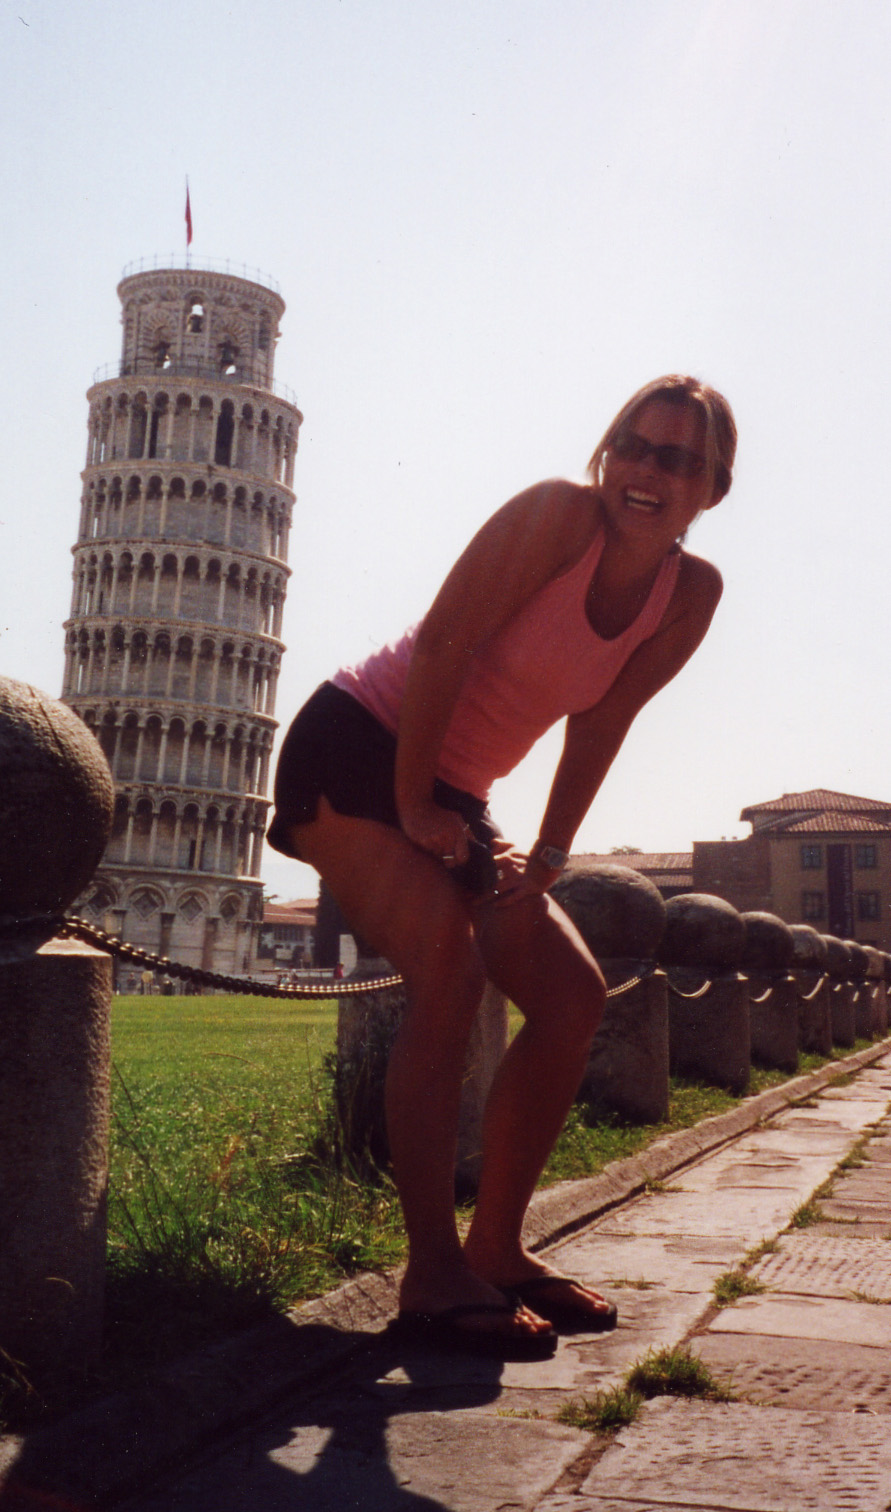 474 leaning Tower of Pisa.jpg